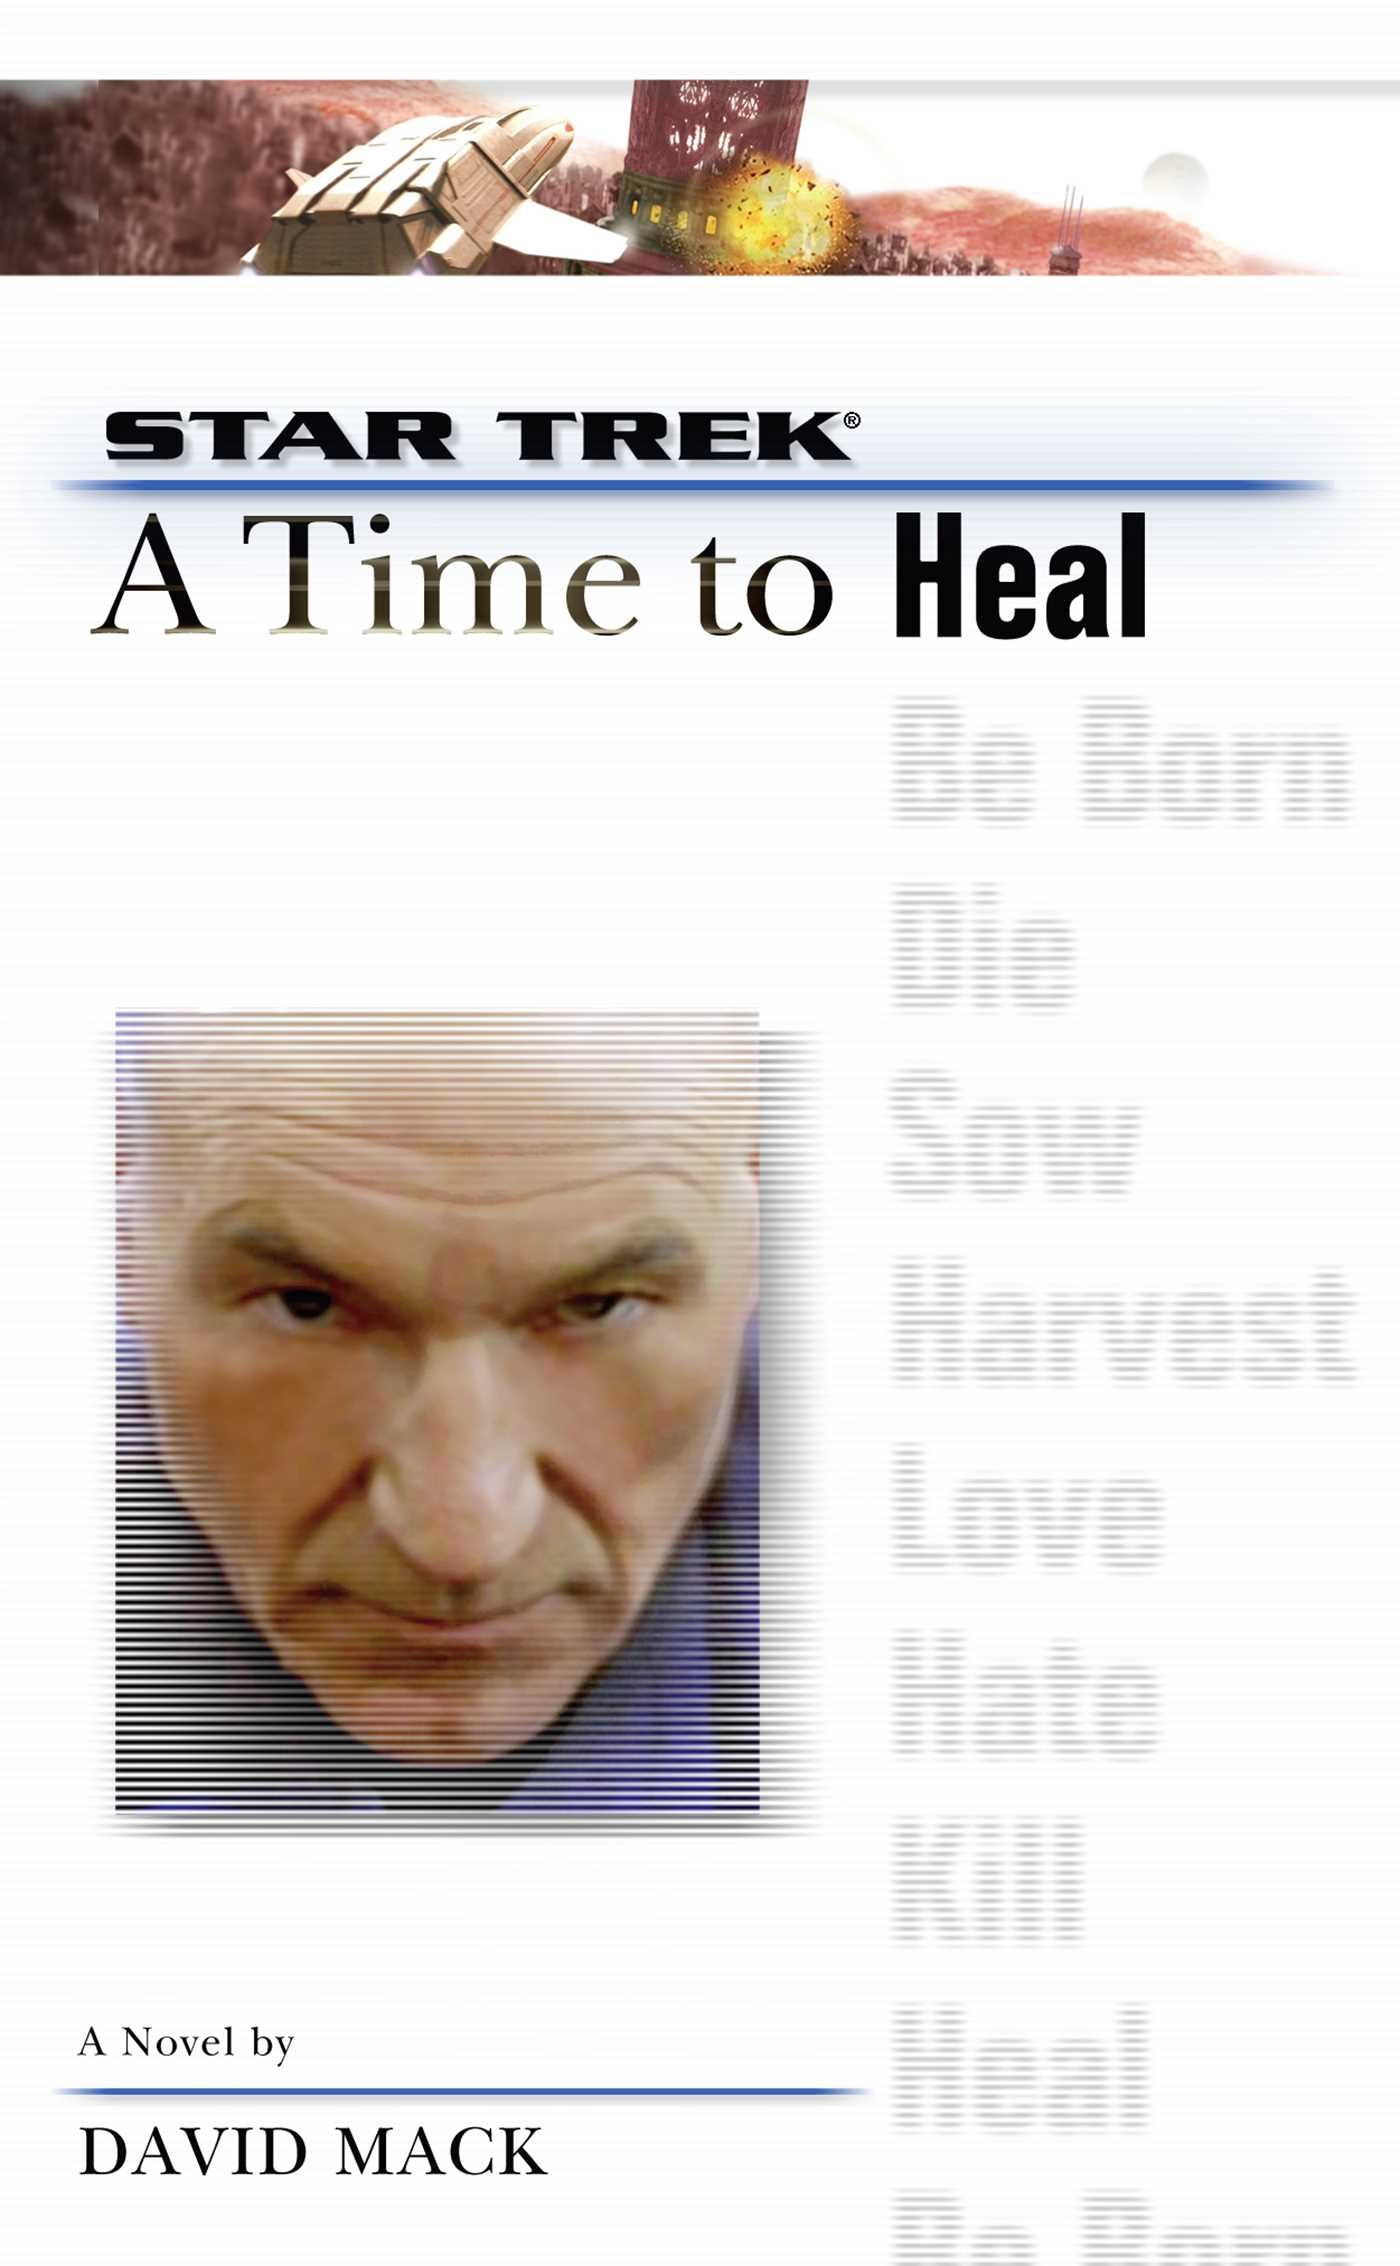 """Star Trek: The Next Generation: 8 A Time To Heal"" Review by Literary Treks"